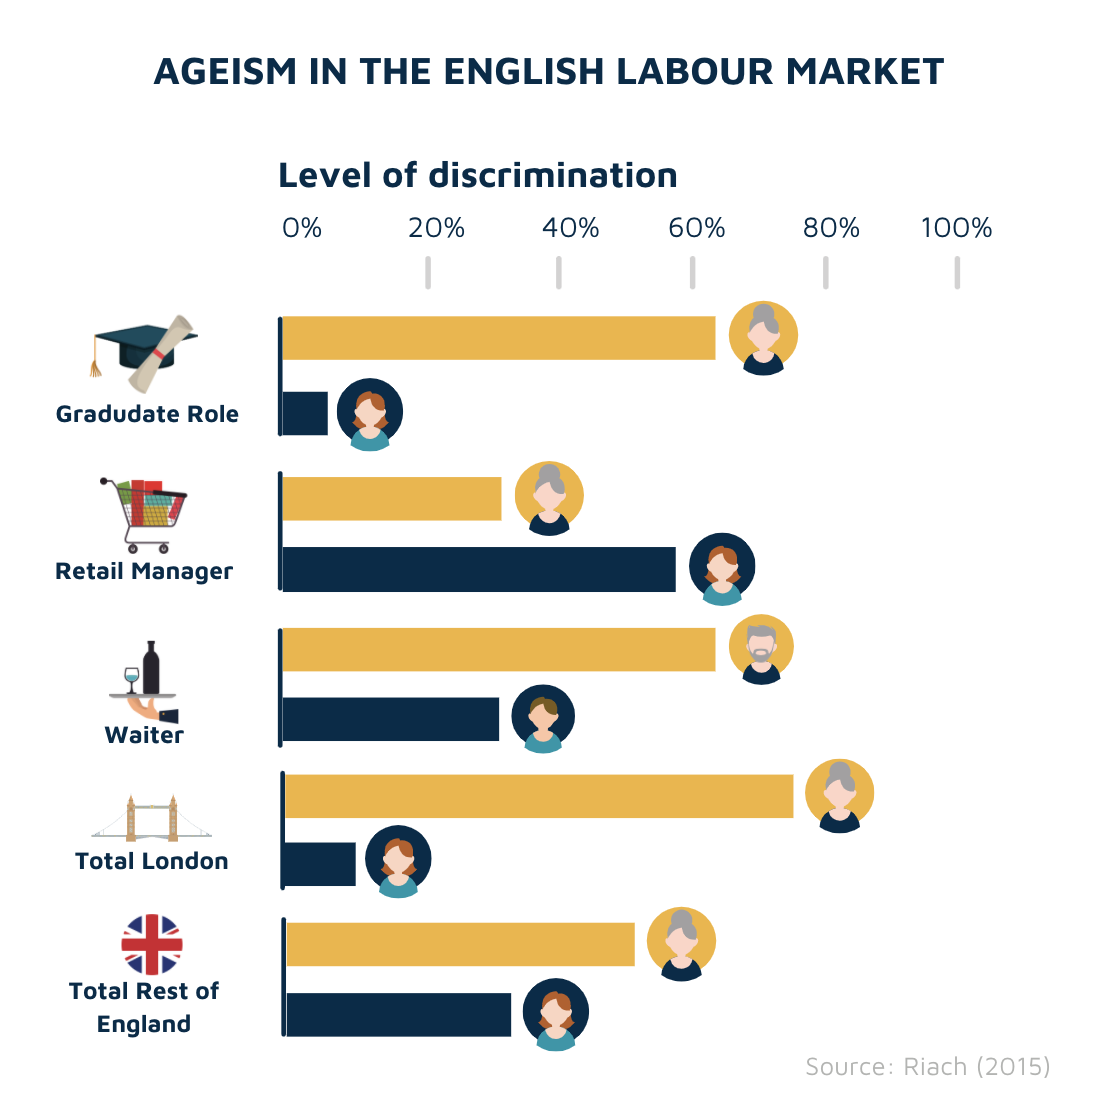 Ageism in the English labour market